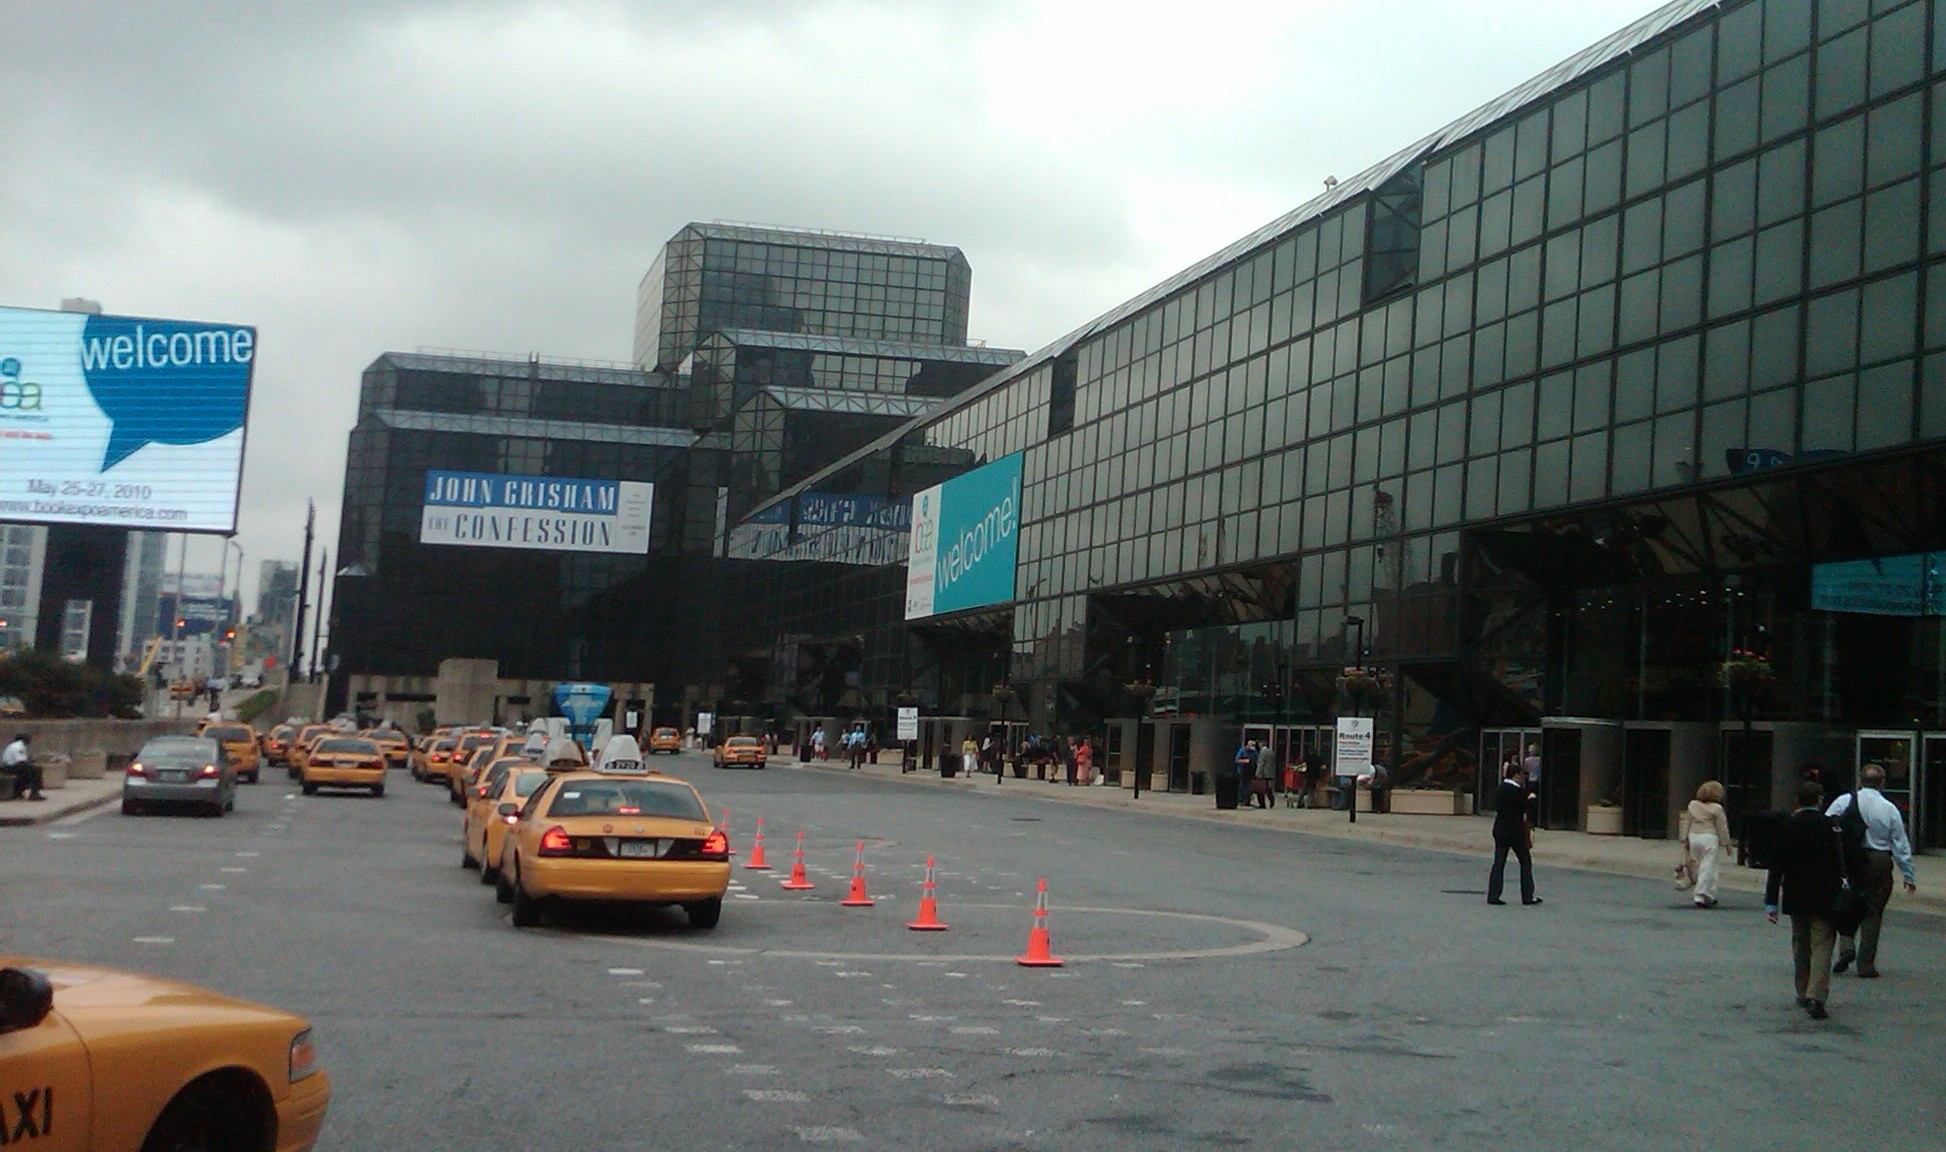 Only John Grisham got the giant sign attached to the outside of the Javitz Center.